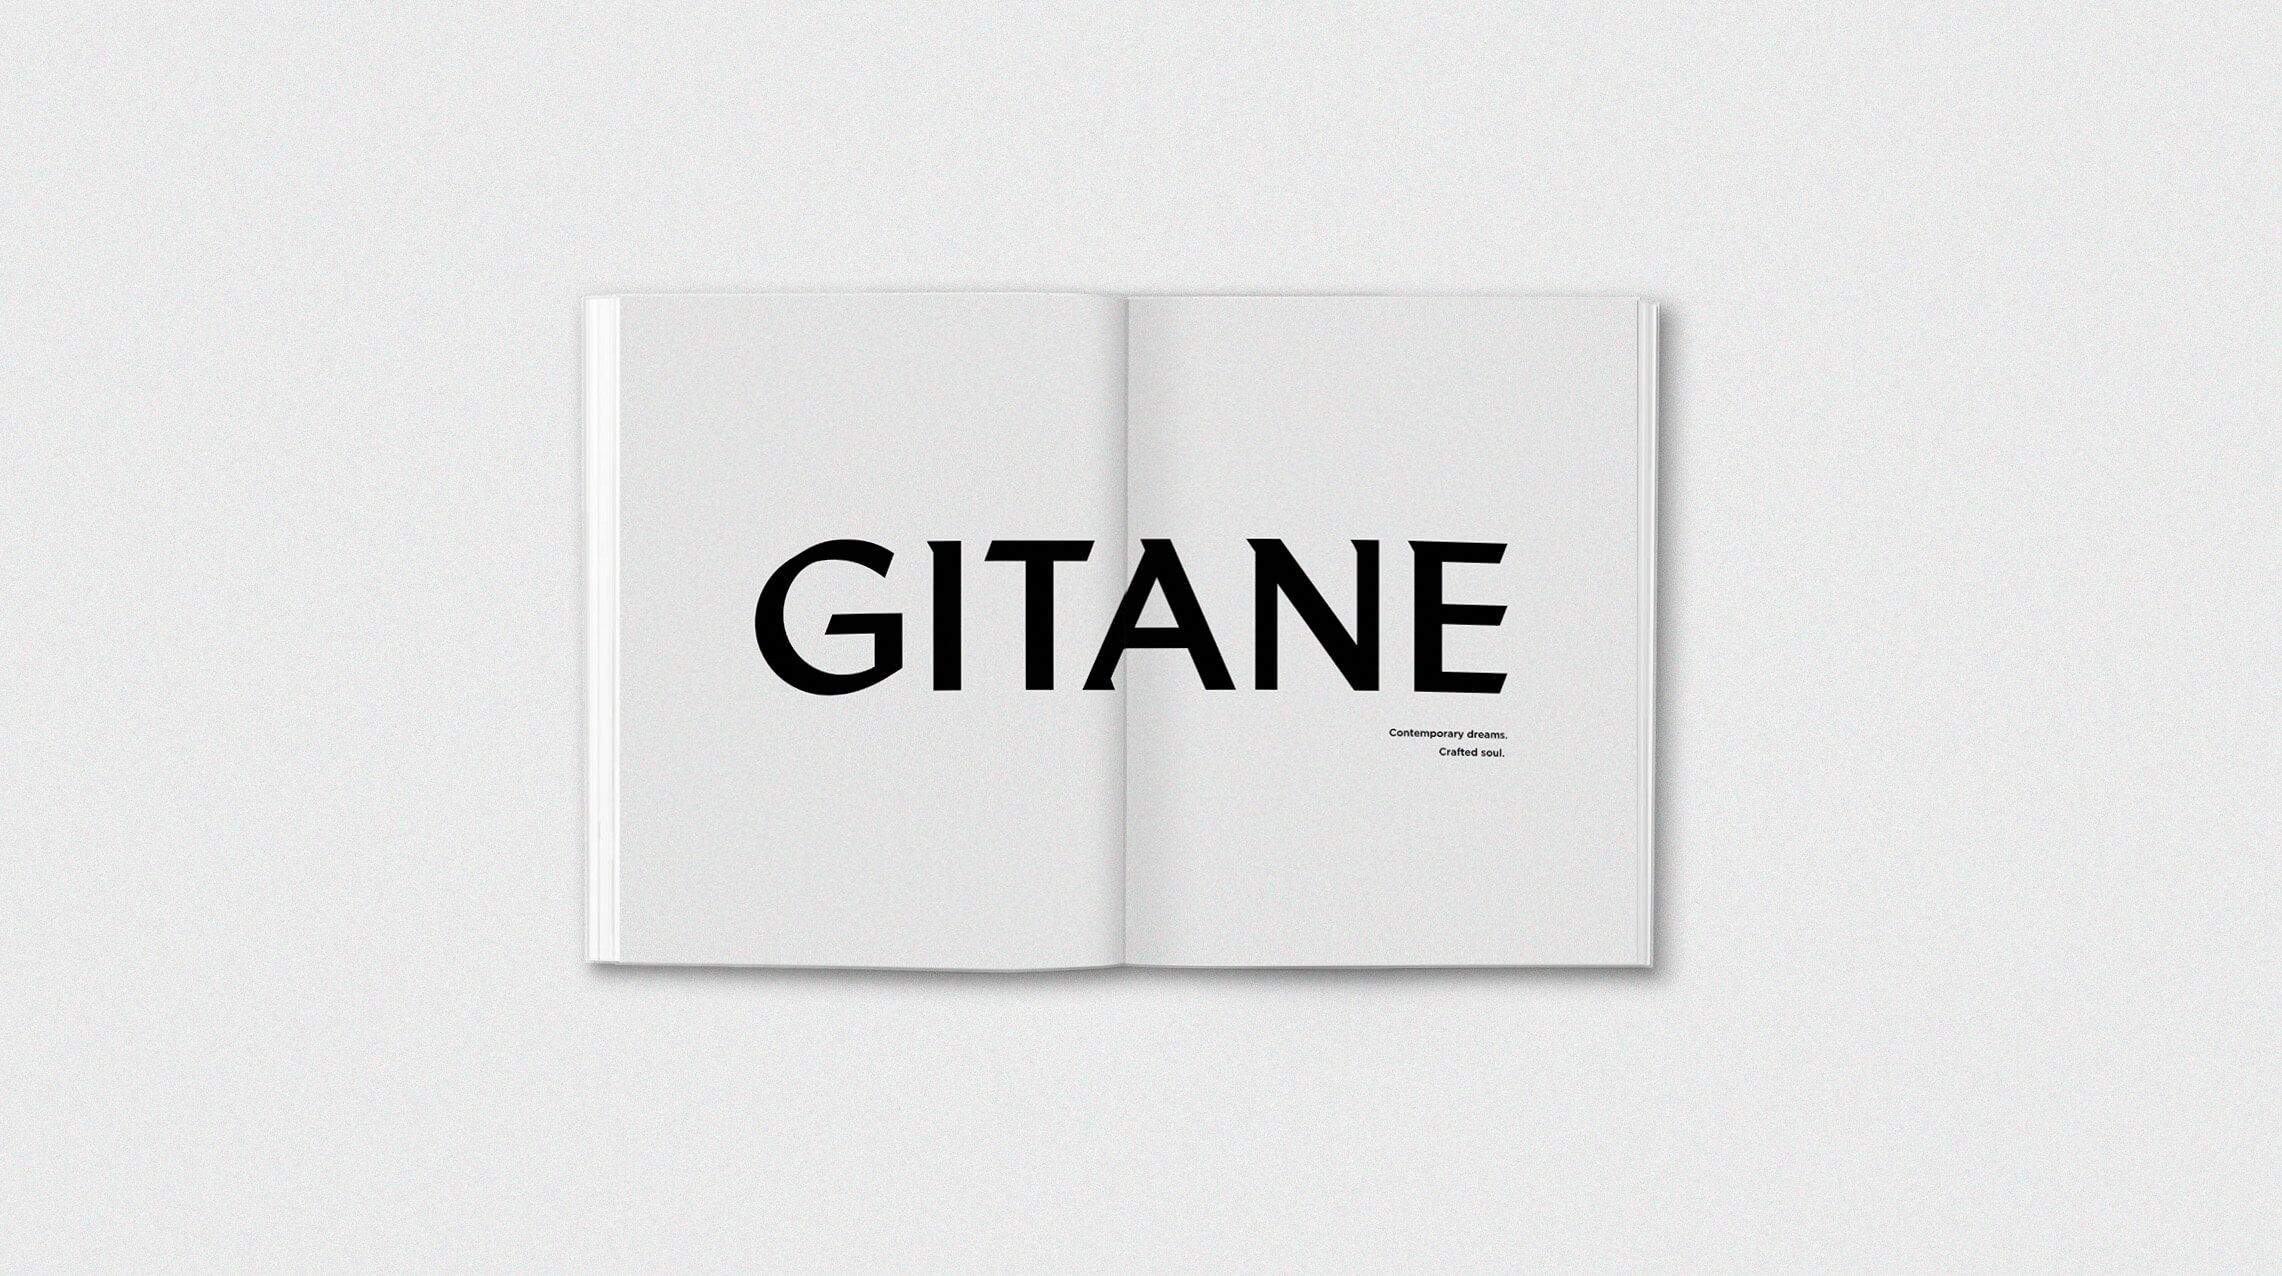 gitane-issue-one-lifestyle-magazine